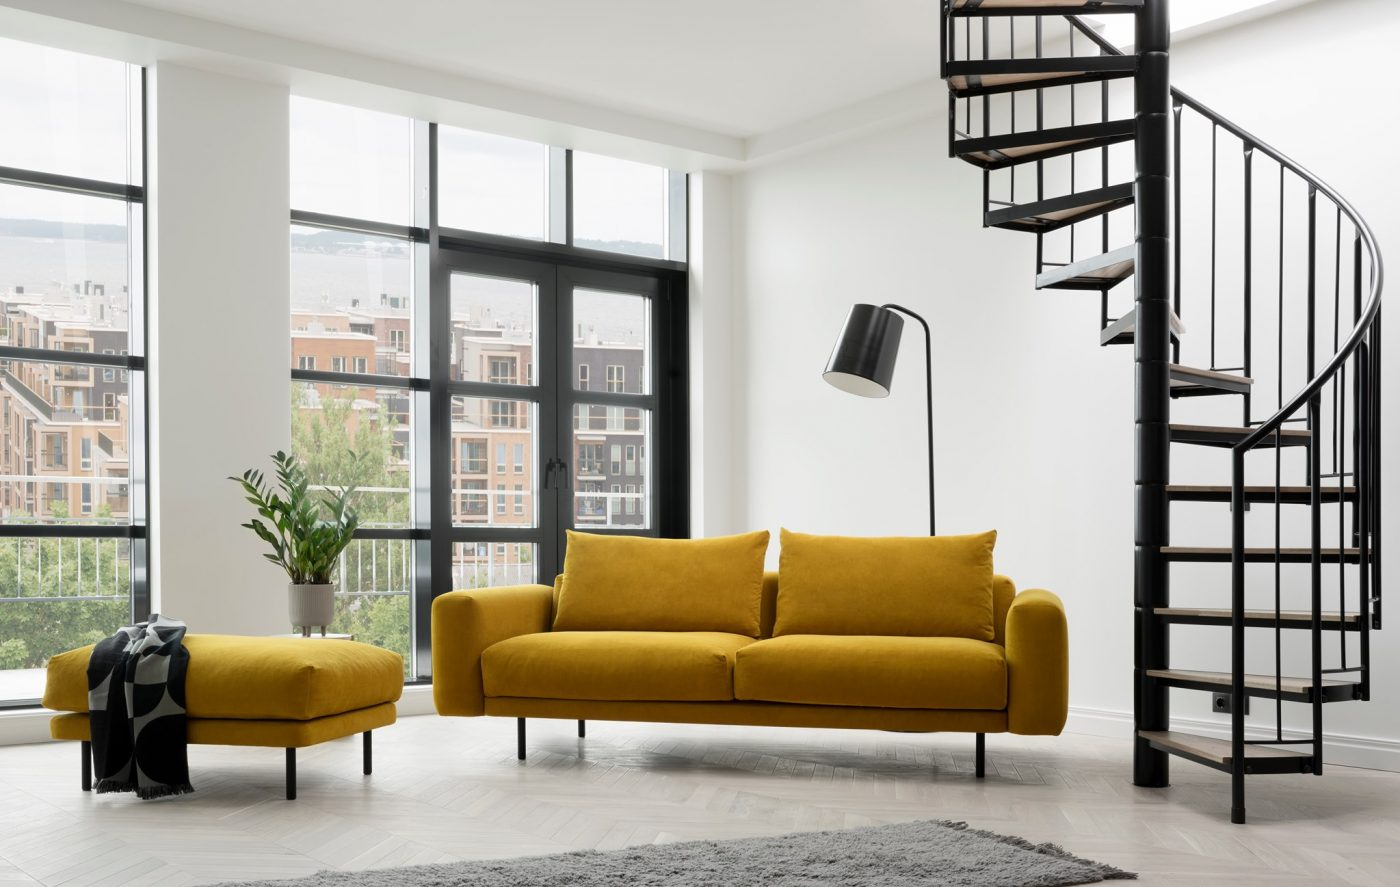 Get To Know The Best Furniture Stores in Riga furniture stores Get To Know The Best Furniture Stores in Riga Get To Know The Best Furniture Stores in Riga 4